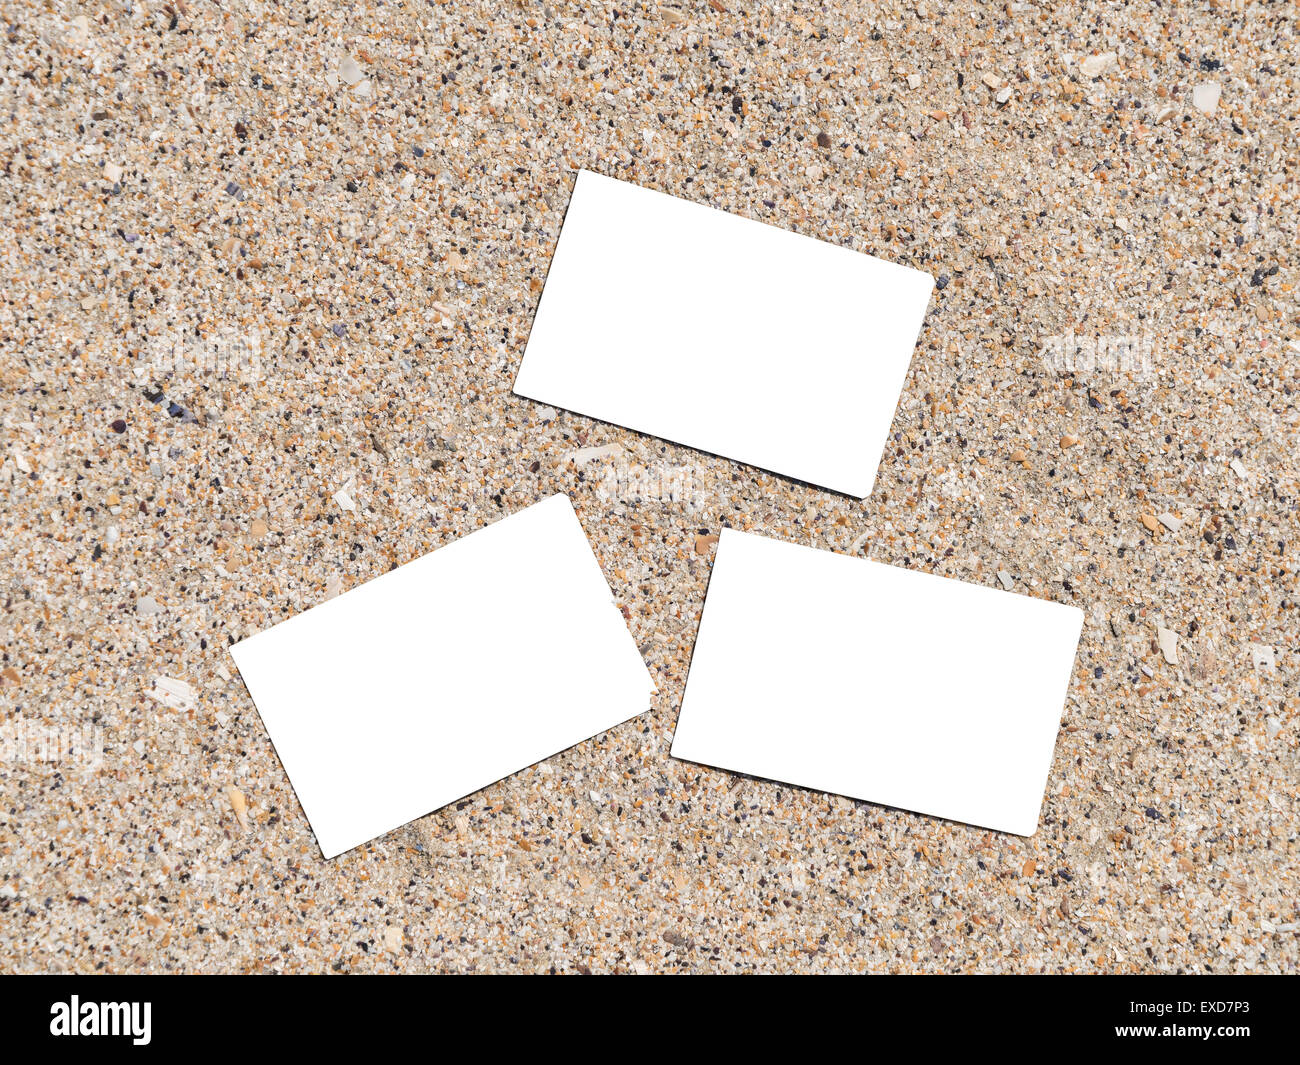 White Blank Business Cards On Beach Sand In Summer Stock Photo ...